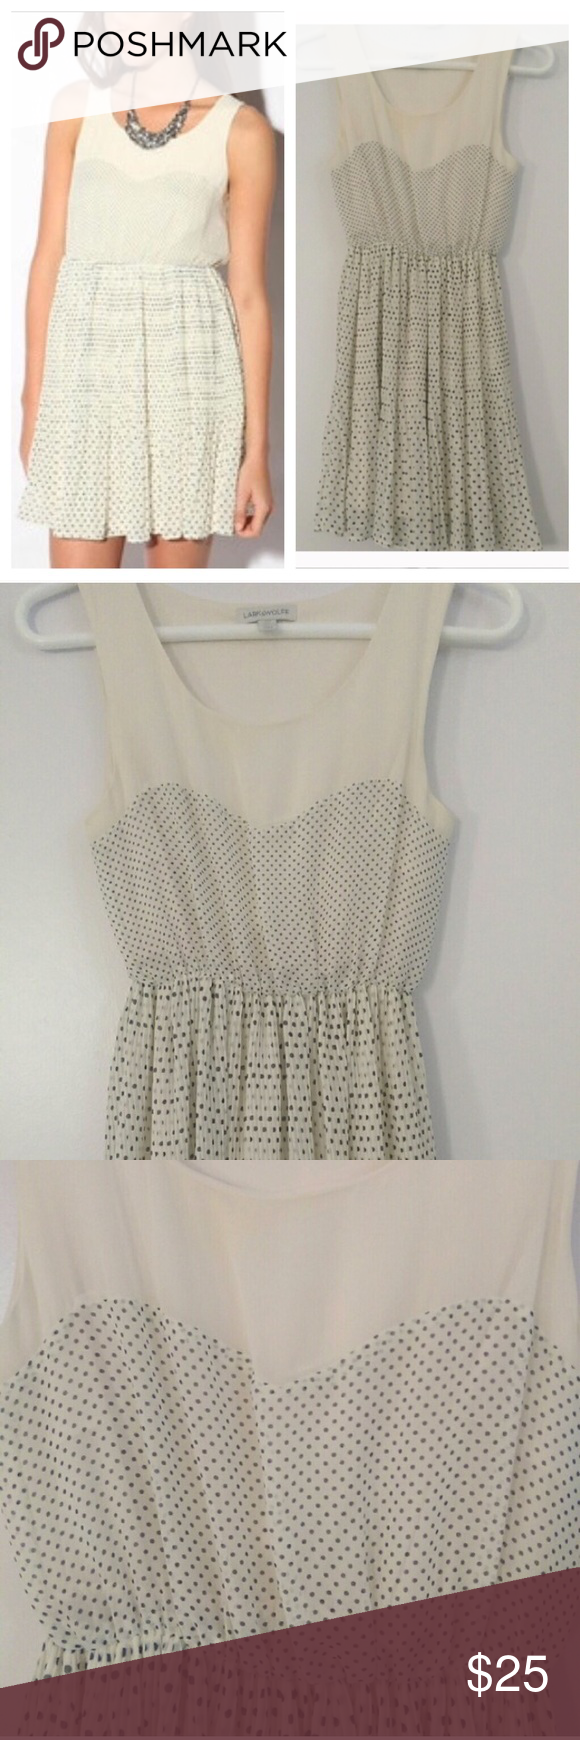 Urban Outfitters Lark and Wolff dress Lovely cream dress with black dots from Urban Outfitters by the brand Lark and Wolff. Dots make a cute sweetheart neckline. Flowy pleated skirt bottom. 100% polyester. Great condition! Urban Outfitters Dresses